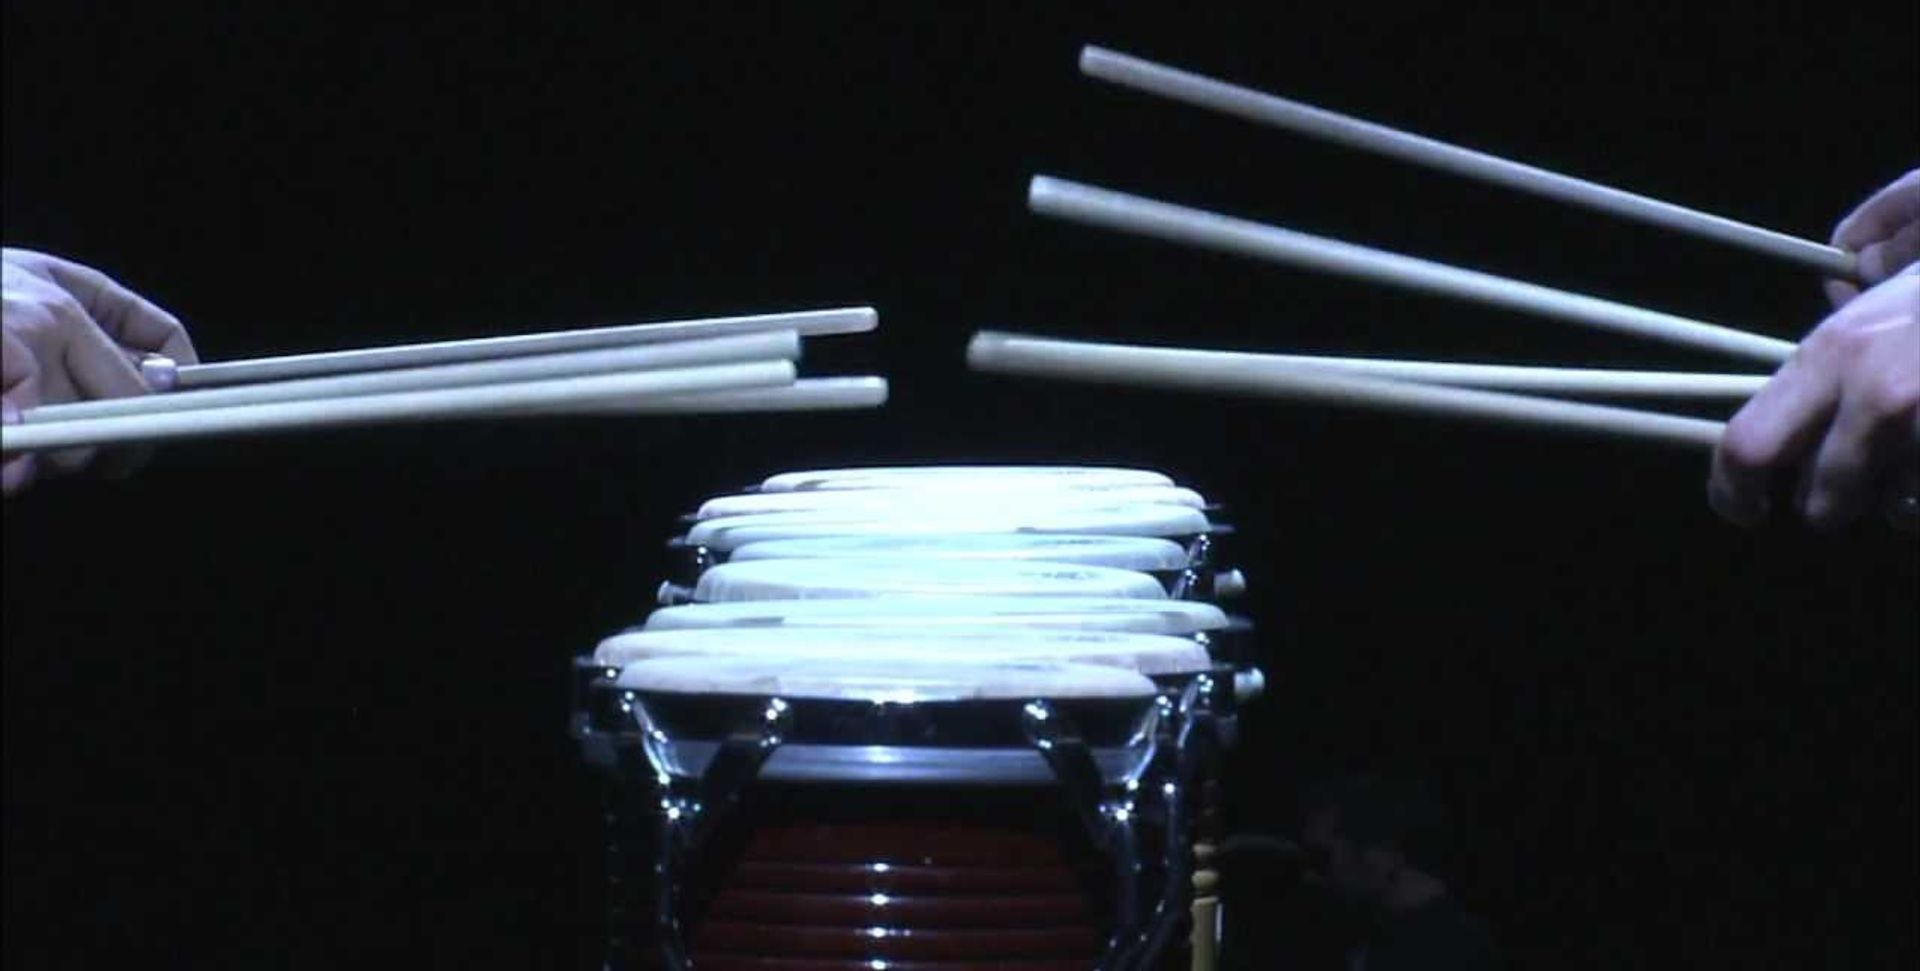 A still from a performance of Steve Reich's Drumming by Portland Percussion Group A still from a performance of Steve Reich's Drumming by Portland Percussion Group